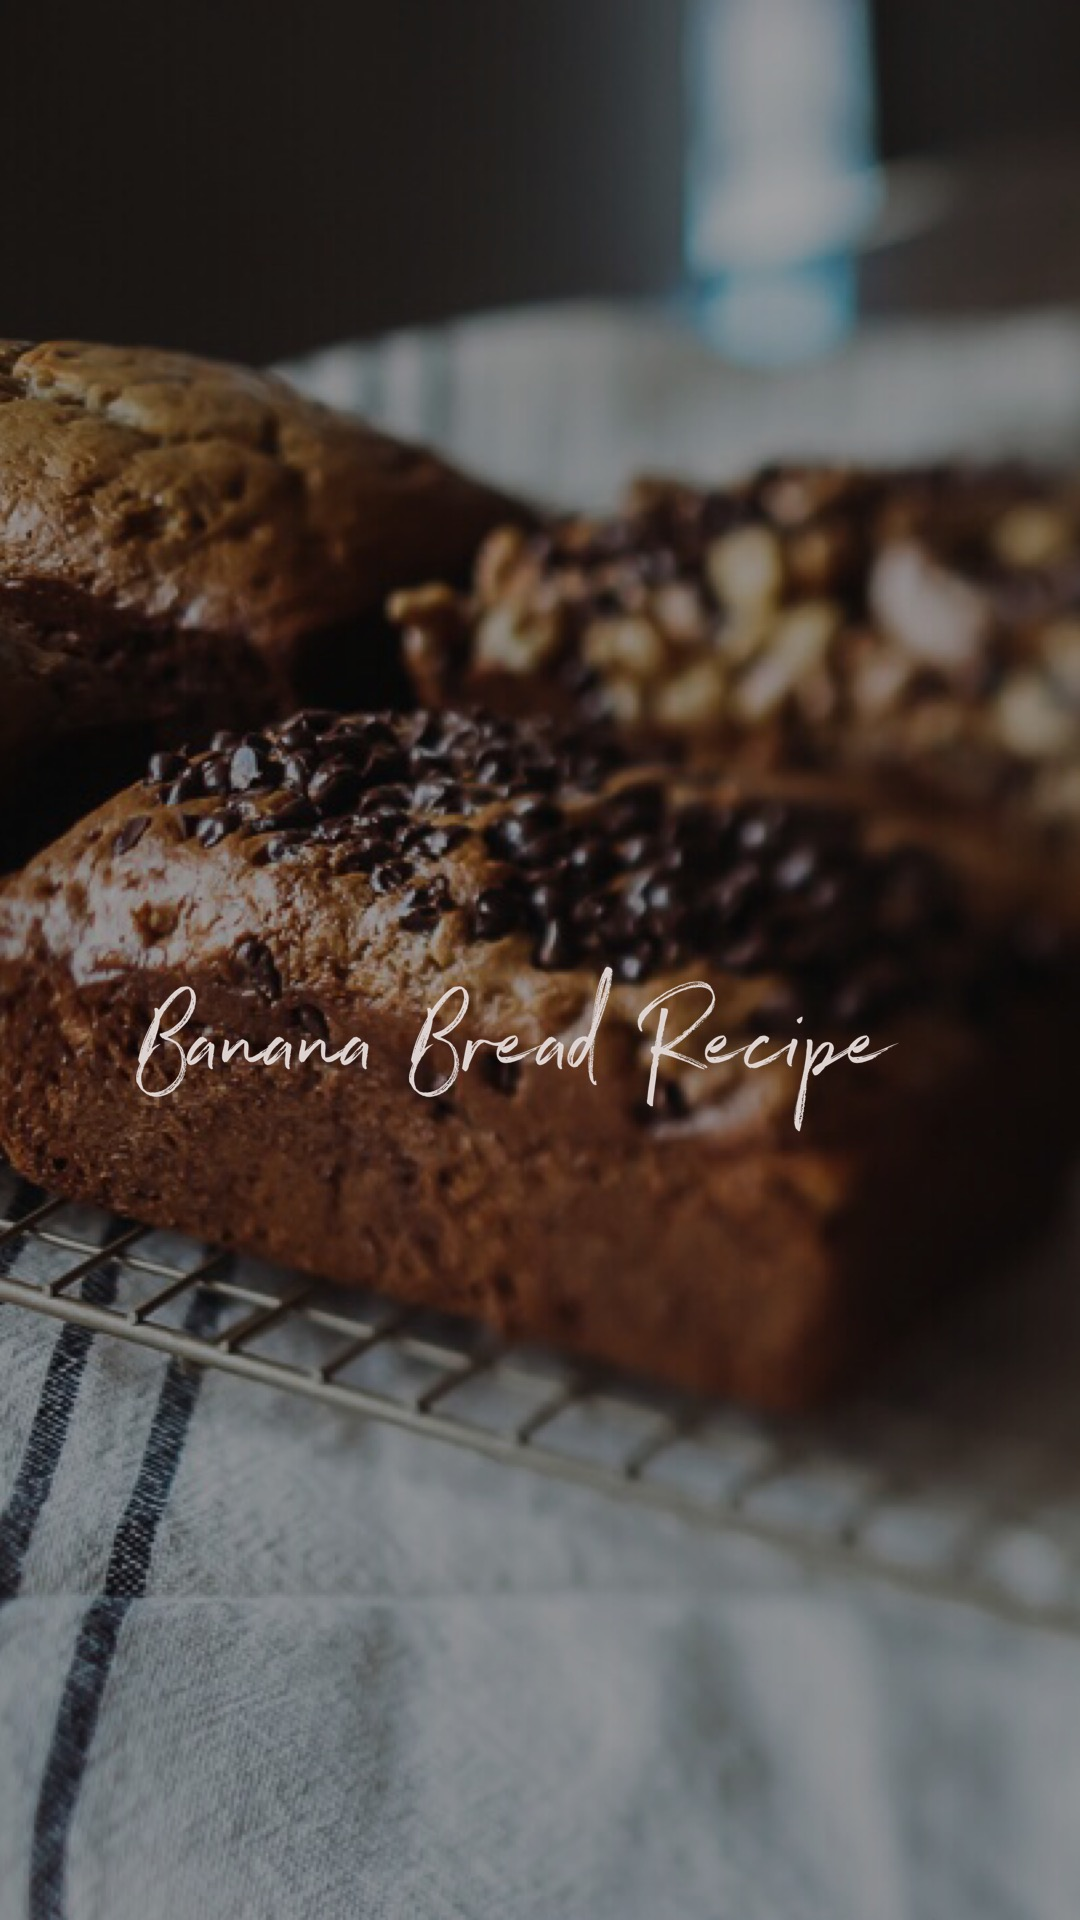 Recipe - Ingredients-5 tbsp butter, 1/2 c sugar, 1/2 c brown sugar, 1 large egg, 2 egg whites, 1 tsp vanilla, 1.5 c mashed bananas, 2 c flour, 1 tsp baking soda, 1/2 tsp salt, 1/4 tsp baking powder, 1/2 heavy cream, 1/3 c walnutsInstructions-preheat the oven 350 degrees, grease 9x5x3 loaf pan, beat butter, add sugars and beat well. add egg, egg whites, and vanilla. beat until well blended. add mashed bananas beat on high for 30 seconds. combine dry ingredients in a medium bowl. add flour mixture alternately with the cream to banana mixture, ending with the flour. add walnut, chocolate chips, or peanut butter chips. pour batter into prepared loaf pan. bake for about 1 hour. cool for 10 minutes.